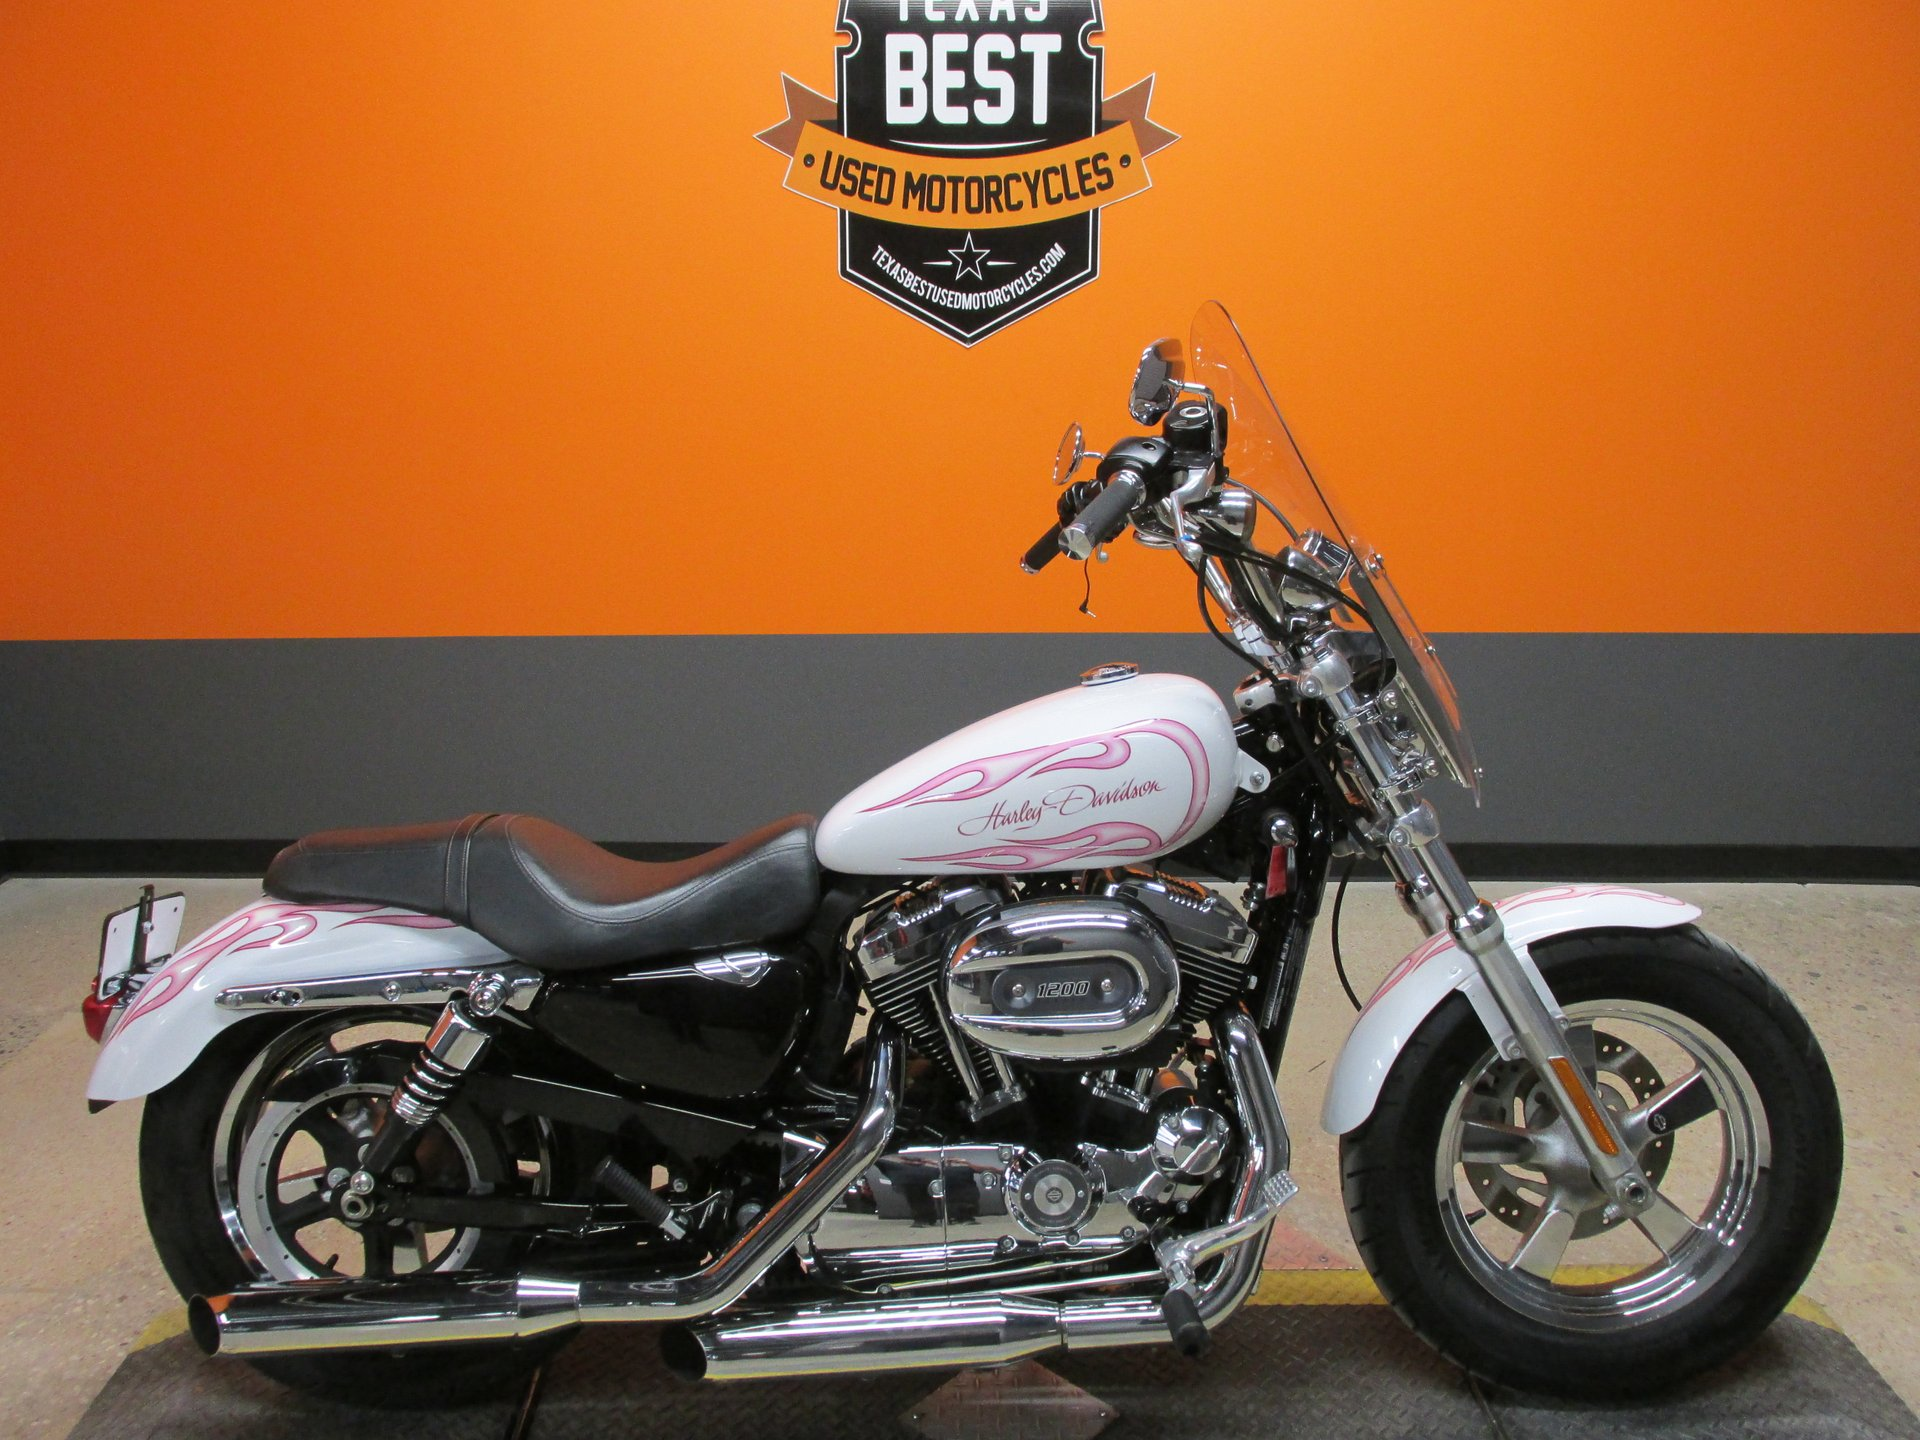 2012 harley davidson sportster 1200 custom program xl1200cp